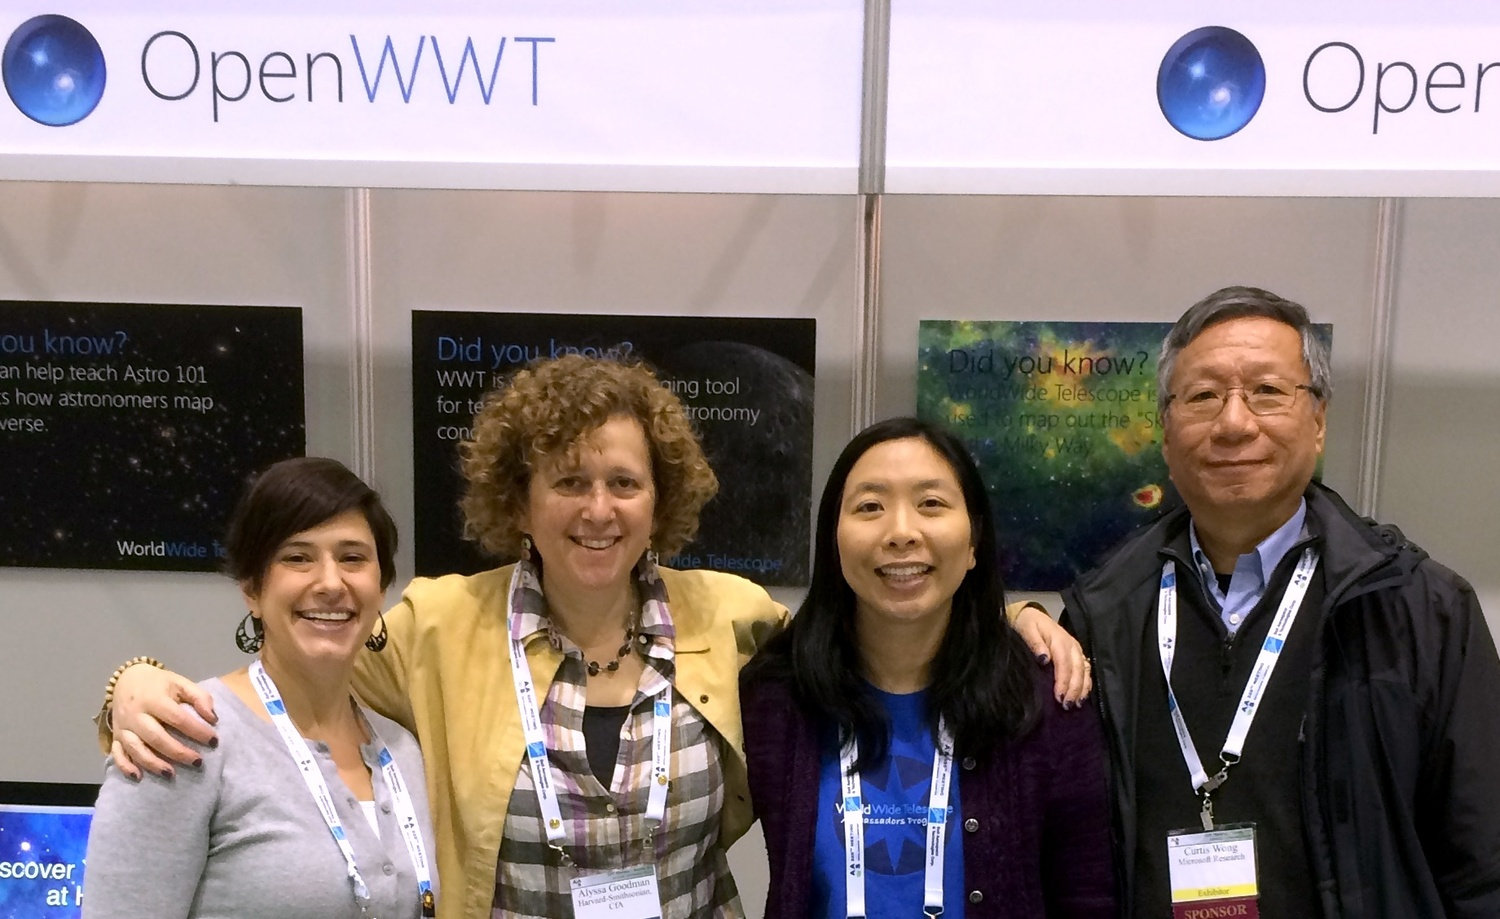 Pictured from left to right: Erin Johnson, Alyssa A. Goodman, Patricia S. Udomprasert, and Curtis Wong at the 2015 annual meeting of the American Astronomical Society in Seattle.